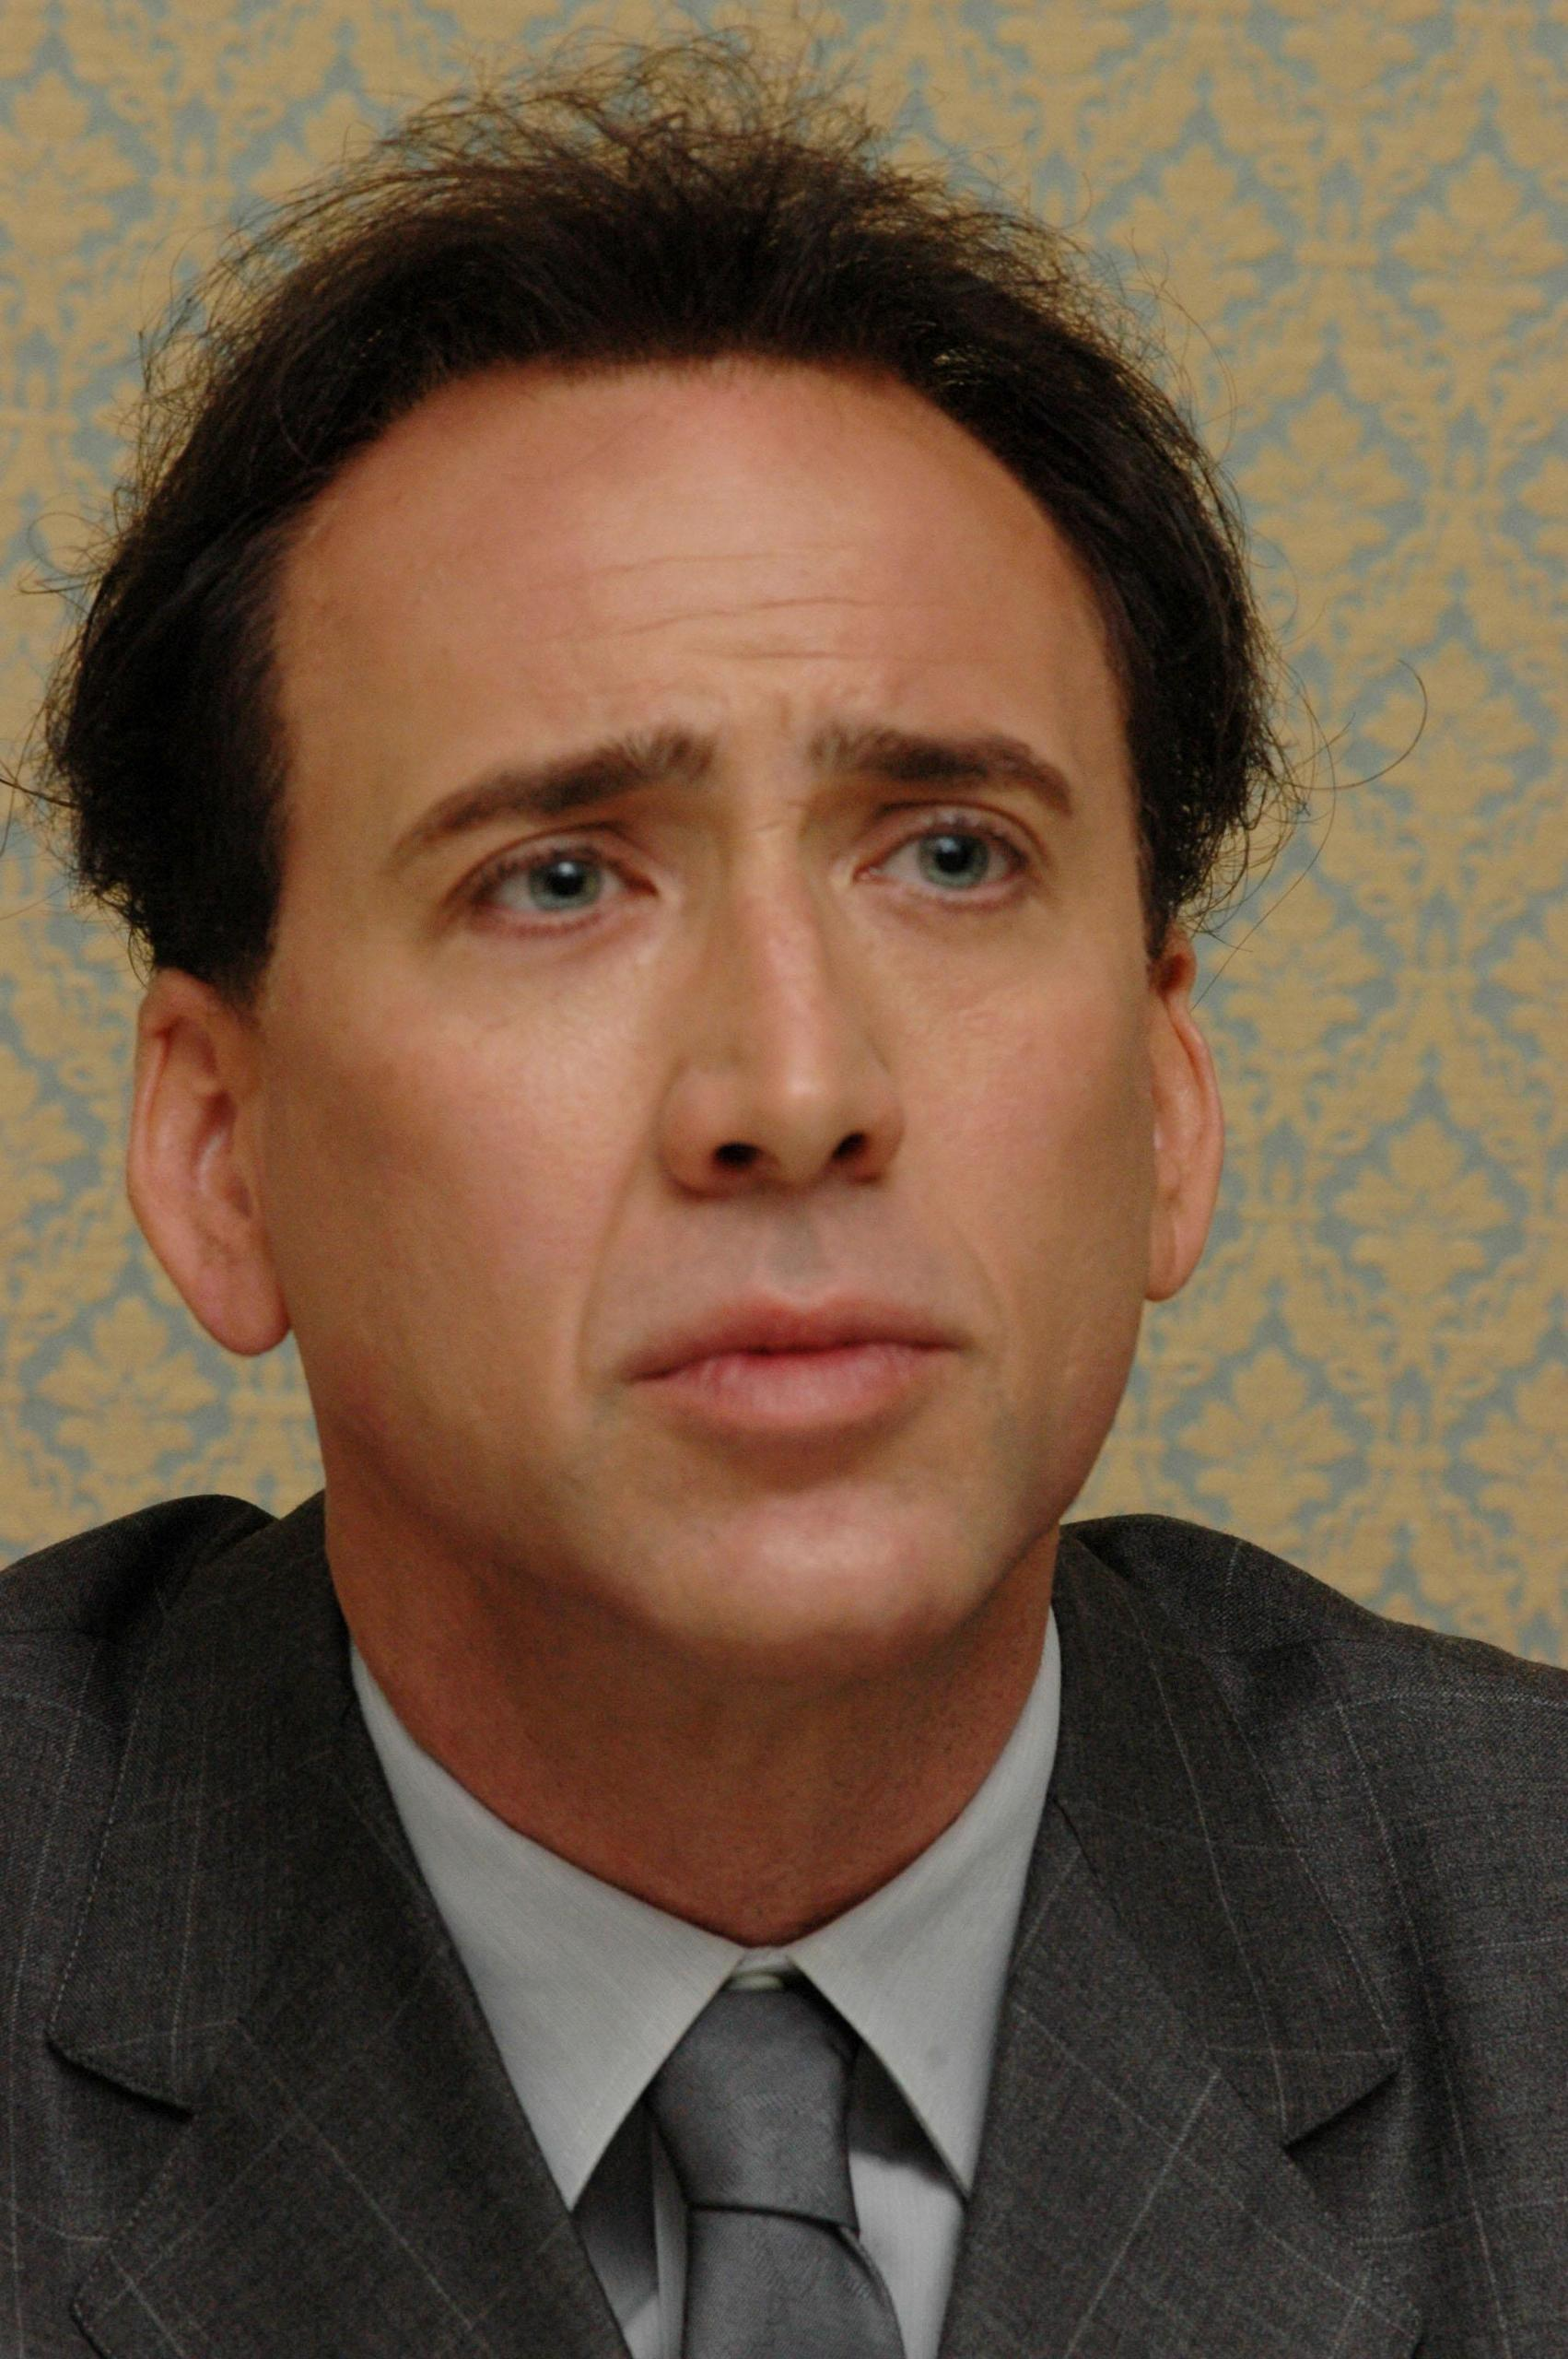 nicolas cage 2017nicolas cage films, nicolas cage movies, nicolas cage face, nicolas cage filmleri, nicolas cage instagram, nicolas cage gif, nicolas cage son, nicolas cage superman, nicolas cage 2016, nicolas cage memes, nicolas cage 2017, nicolas cage height, nicolas cage young, nicolas cage wiki, nicolas cage filme, nicolas cage imdb, nicolas cage laugh, nicolas cage ghost rider, nicolas cage face off, nicolas cage movies list